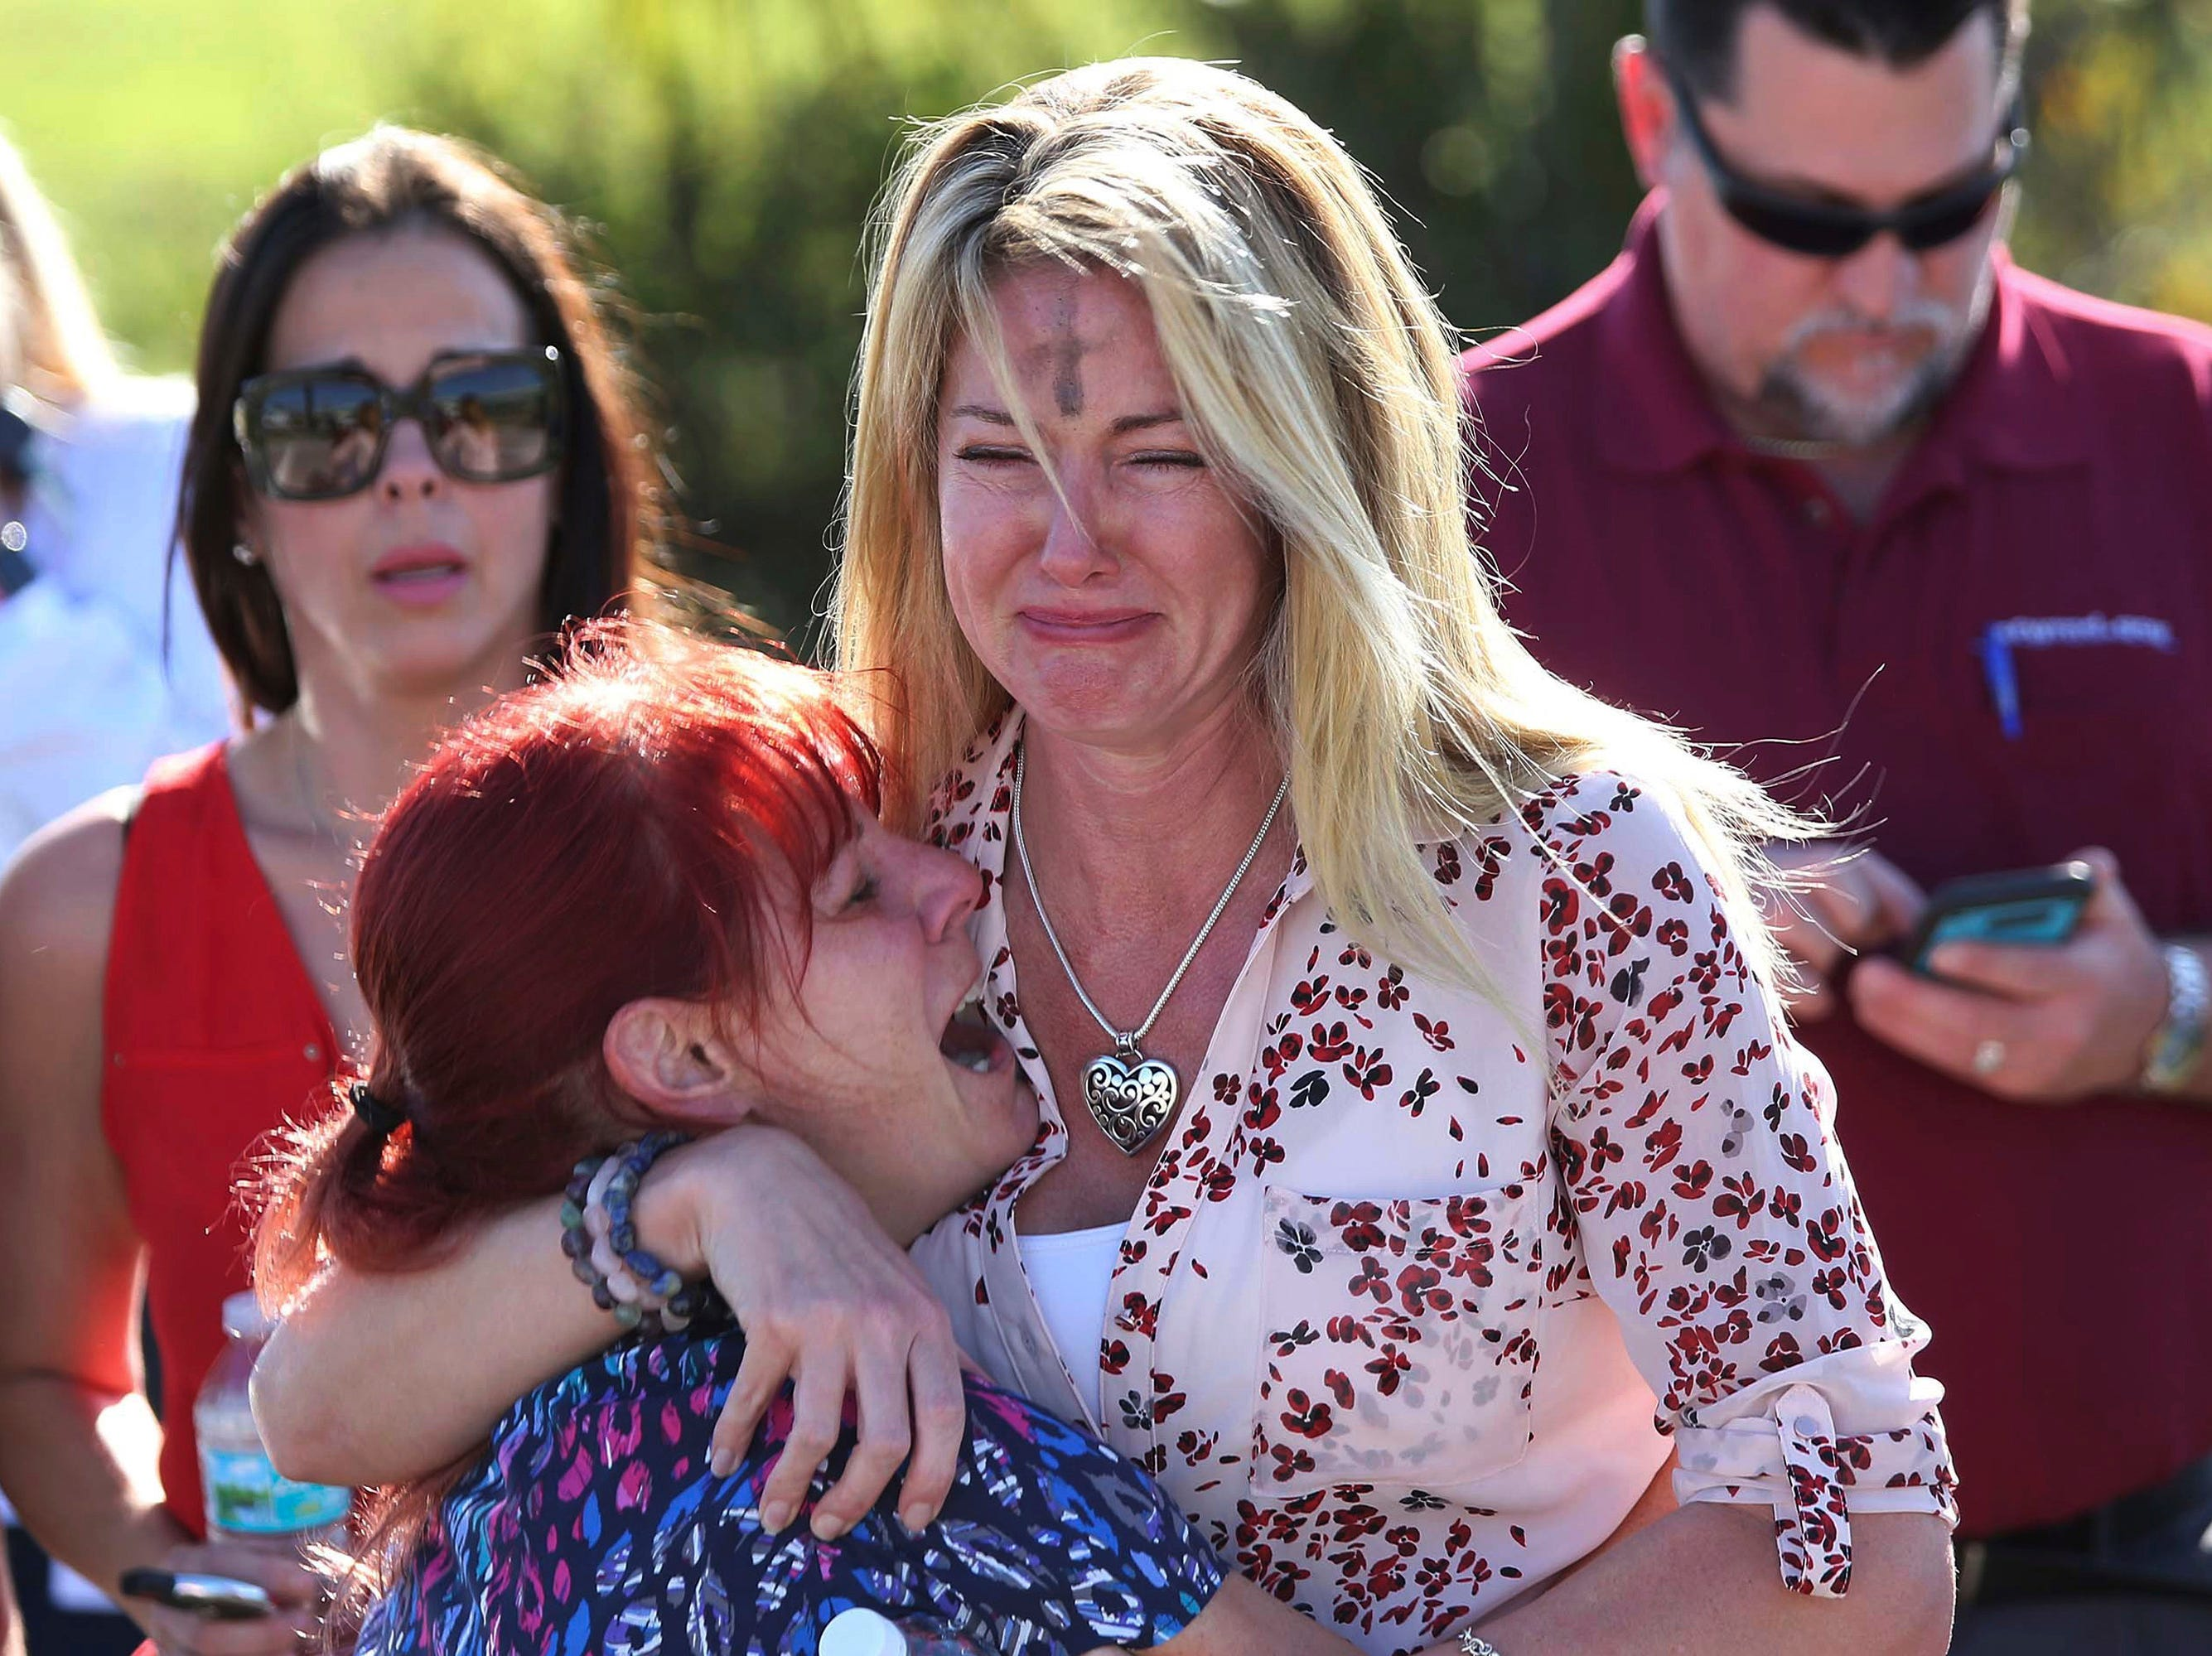 Feb. 14, 2018: Parents wait for news after a reports of a shooting at Marjory Stoneman Douglas High School in Parkland, Fla.